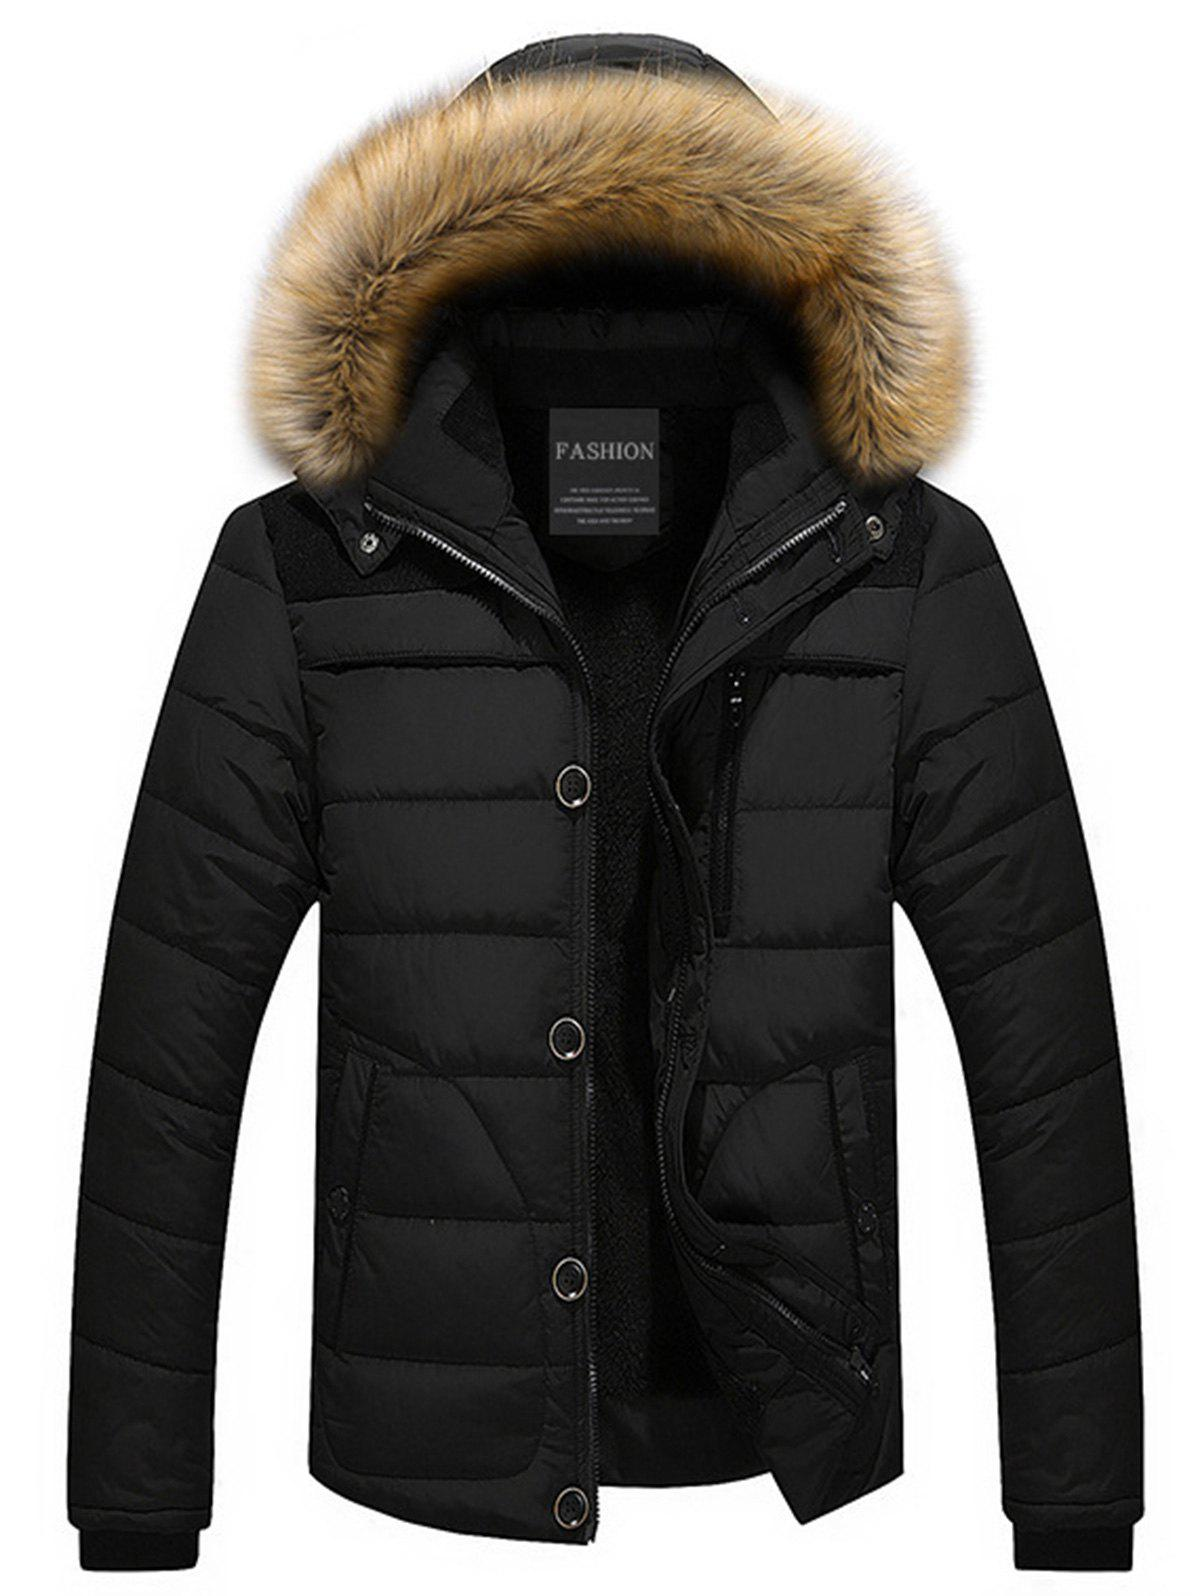 Hooded Puffer Jacket with Faux Fur TrimMEN<br><br>Size: 4XL; Color: BLACK; Clothes Type: Jackets; Style: Fashion; Material: Cotton,Polyester; Collar: Hooded; Shirt Length: Regular; Sleeve Length: Long Sleeves; Season: Fall,Winter; Closure Type: Zipper; Occasion: Casual,Daily Use,Going Out; Weight: 1.1200kg; Package Contents: 1 x Jacket;